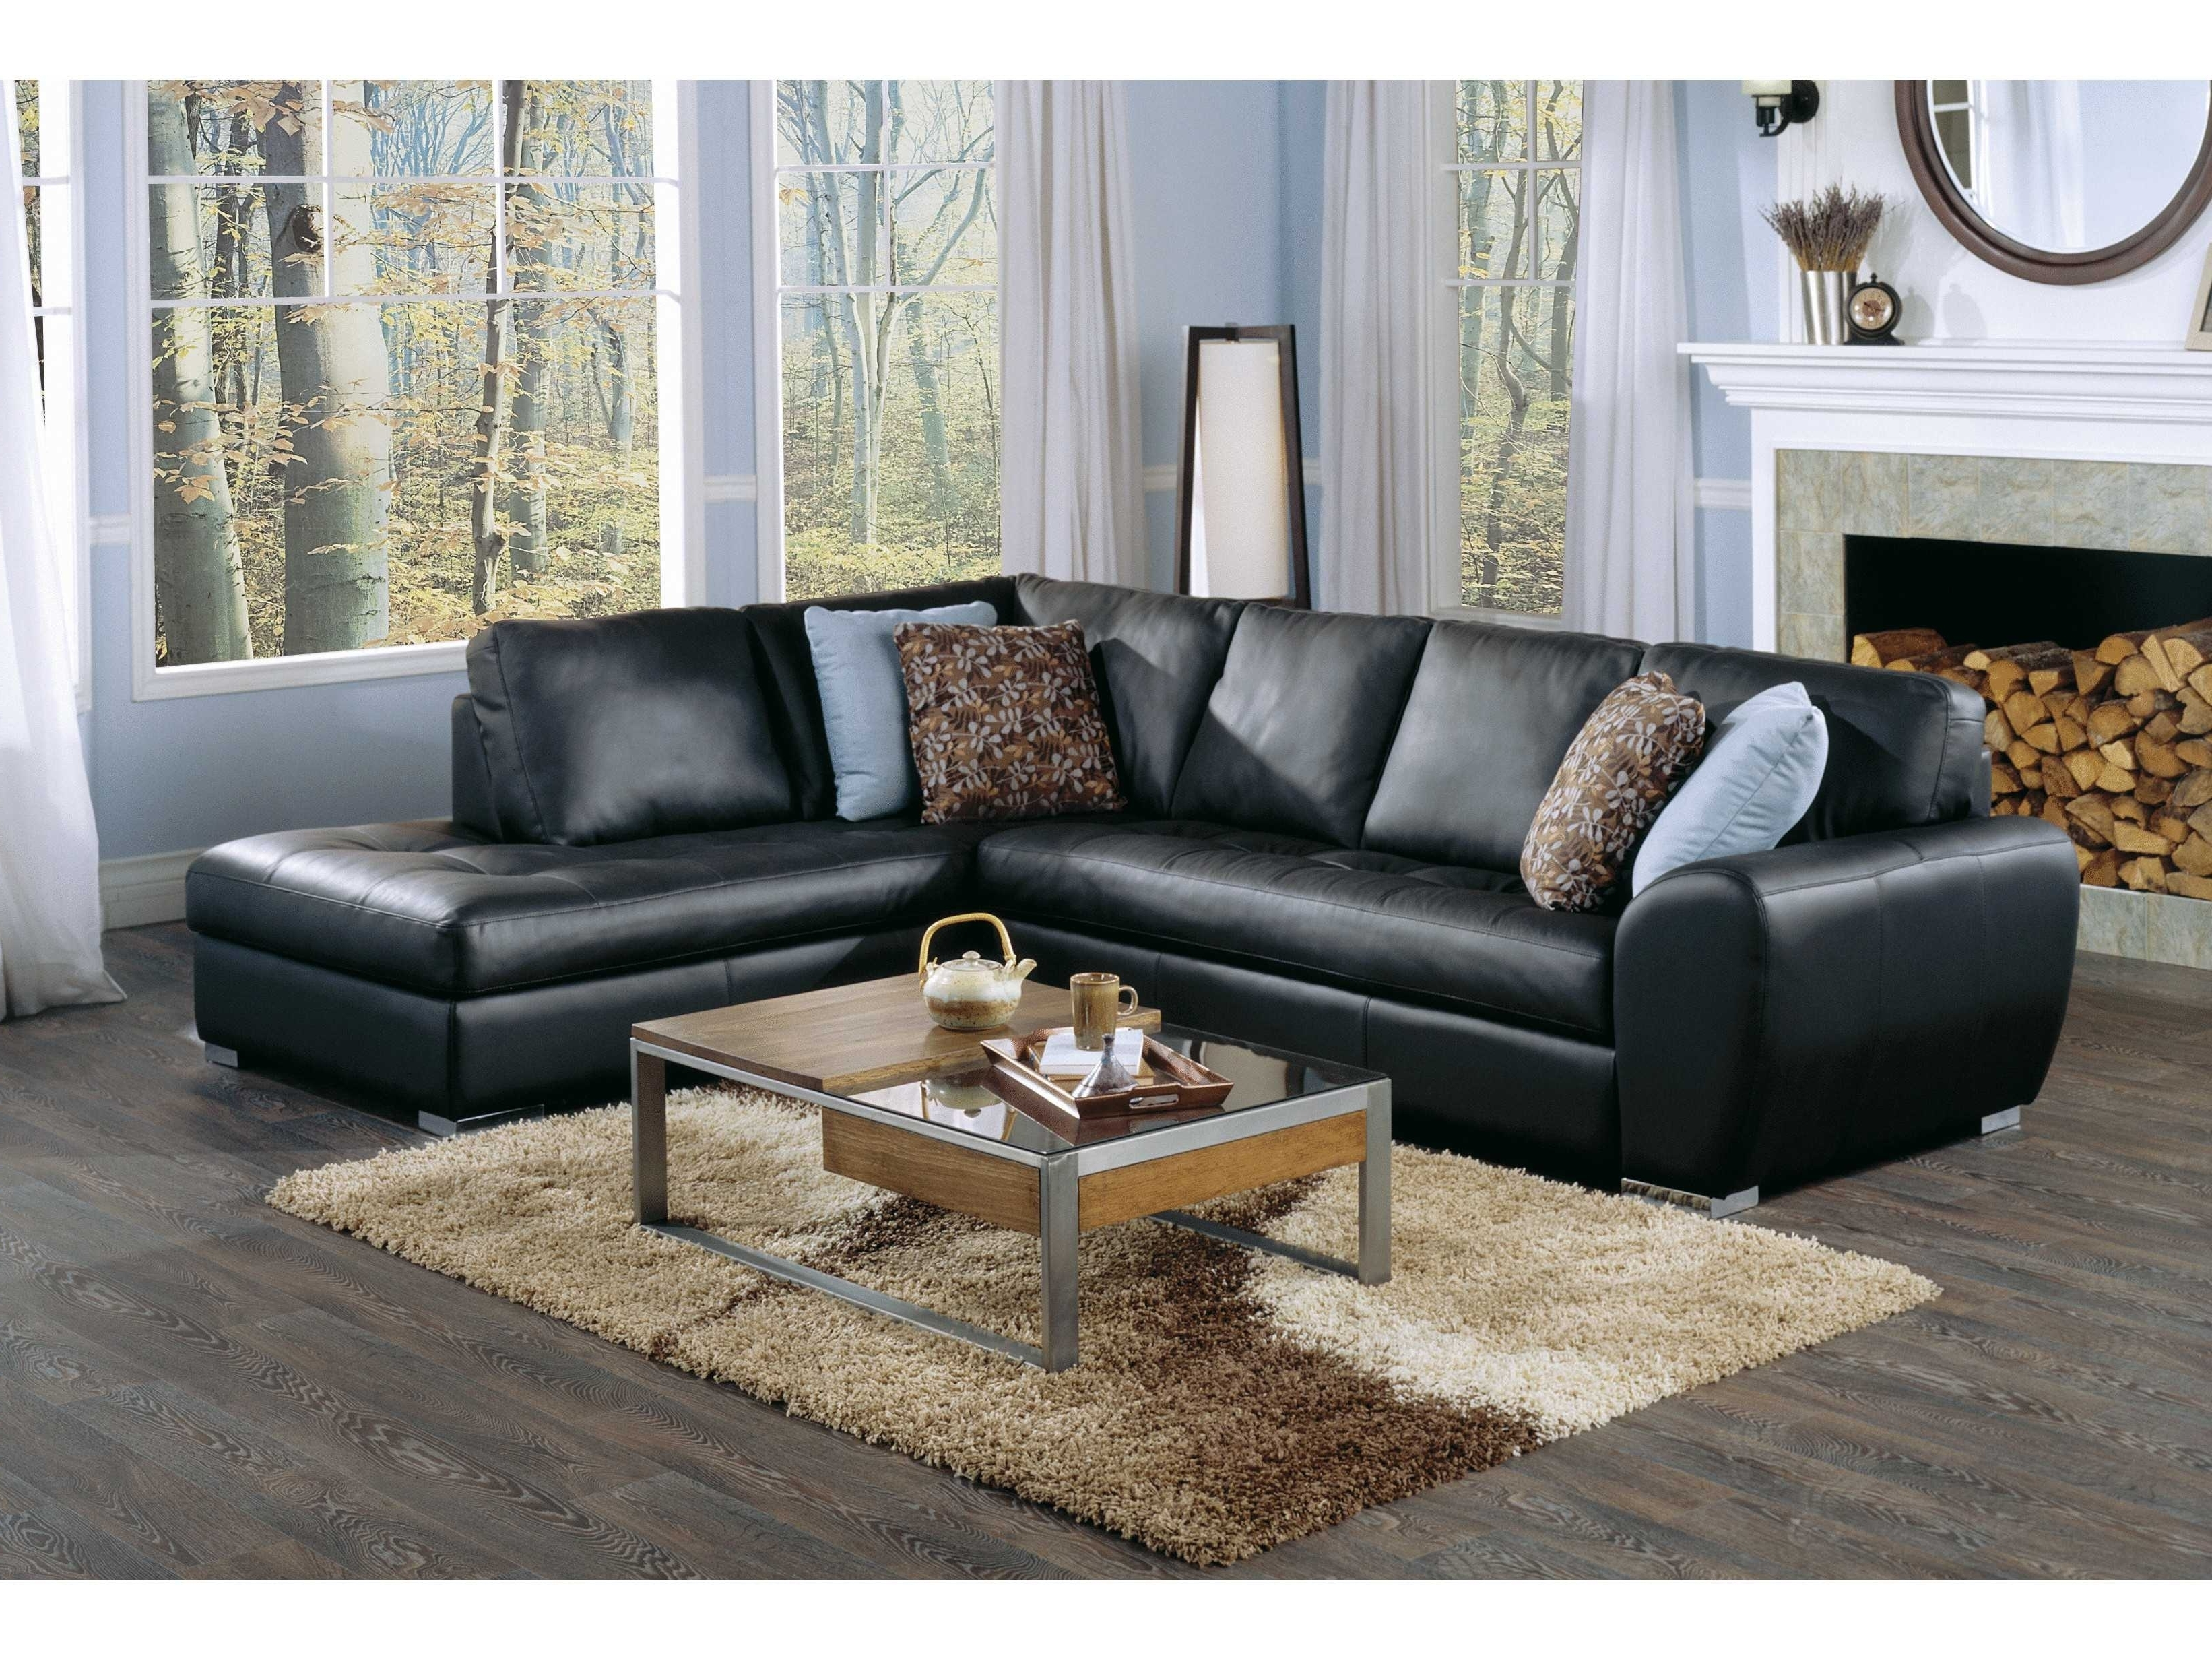 2018 popular kelowna sectional sofas pertaining to peterborough ontario sectional sofas